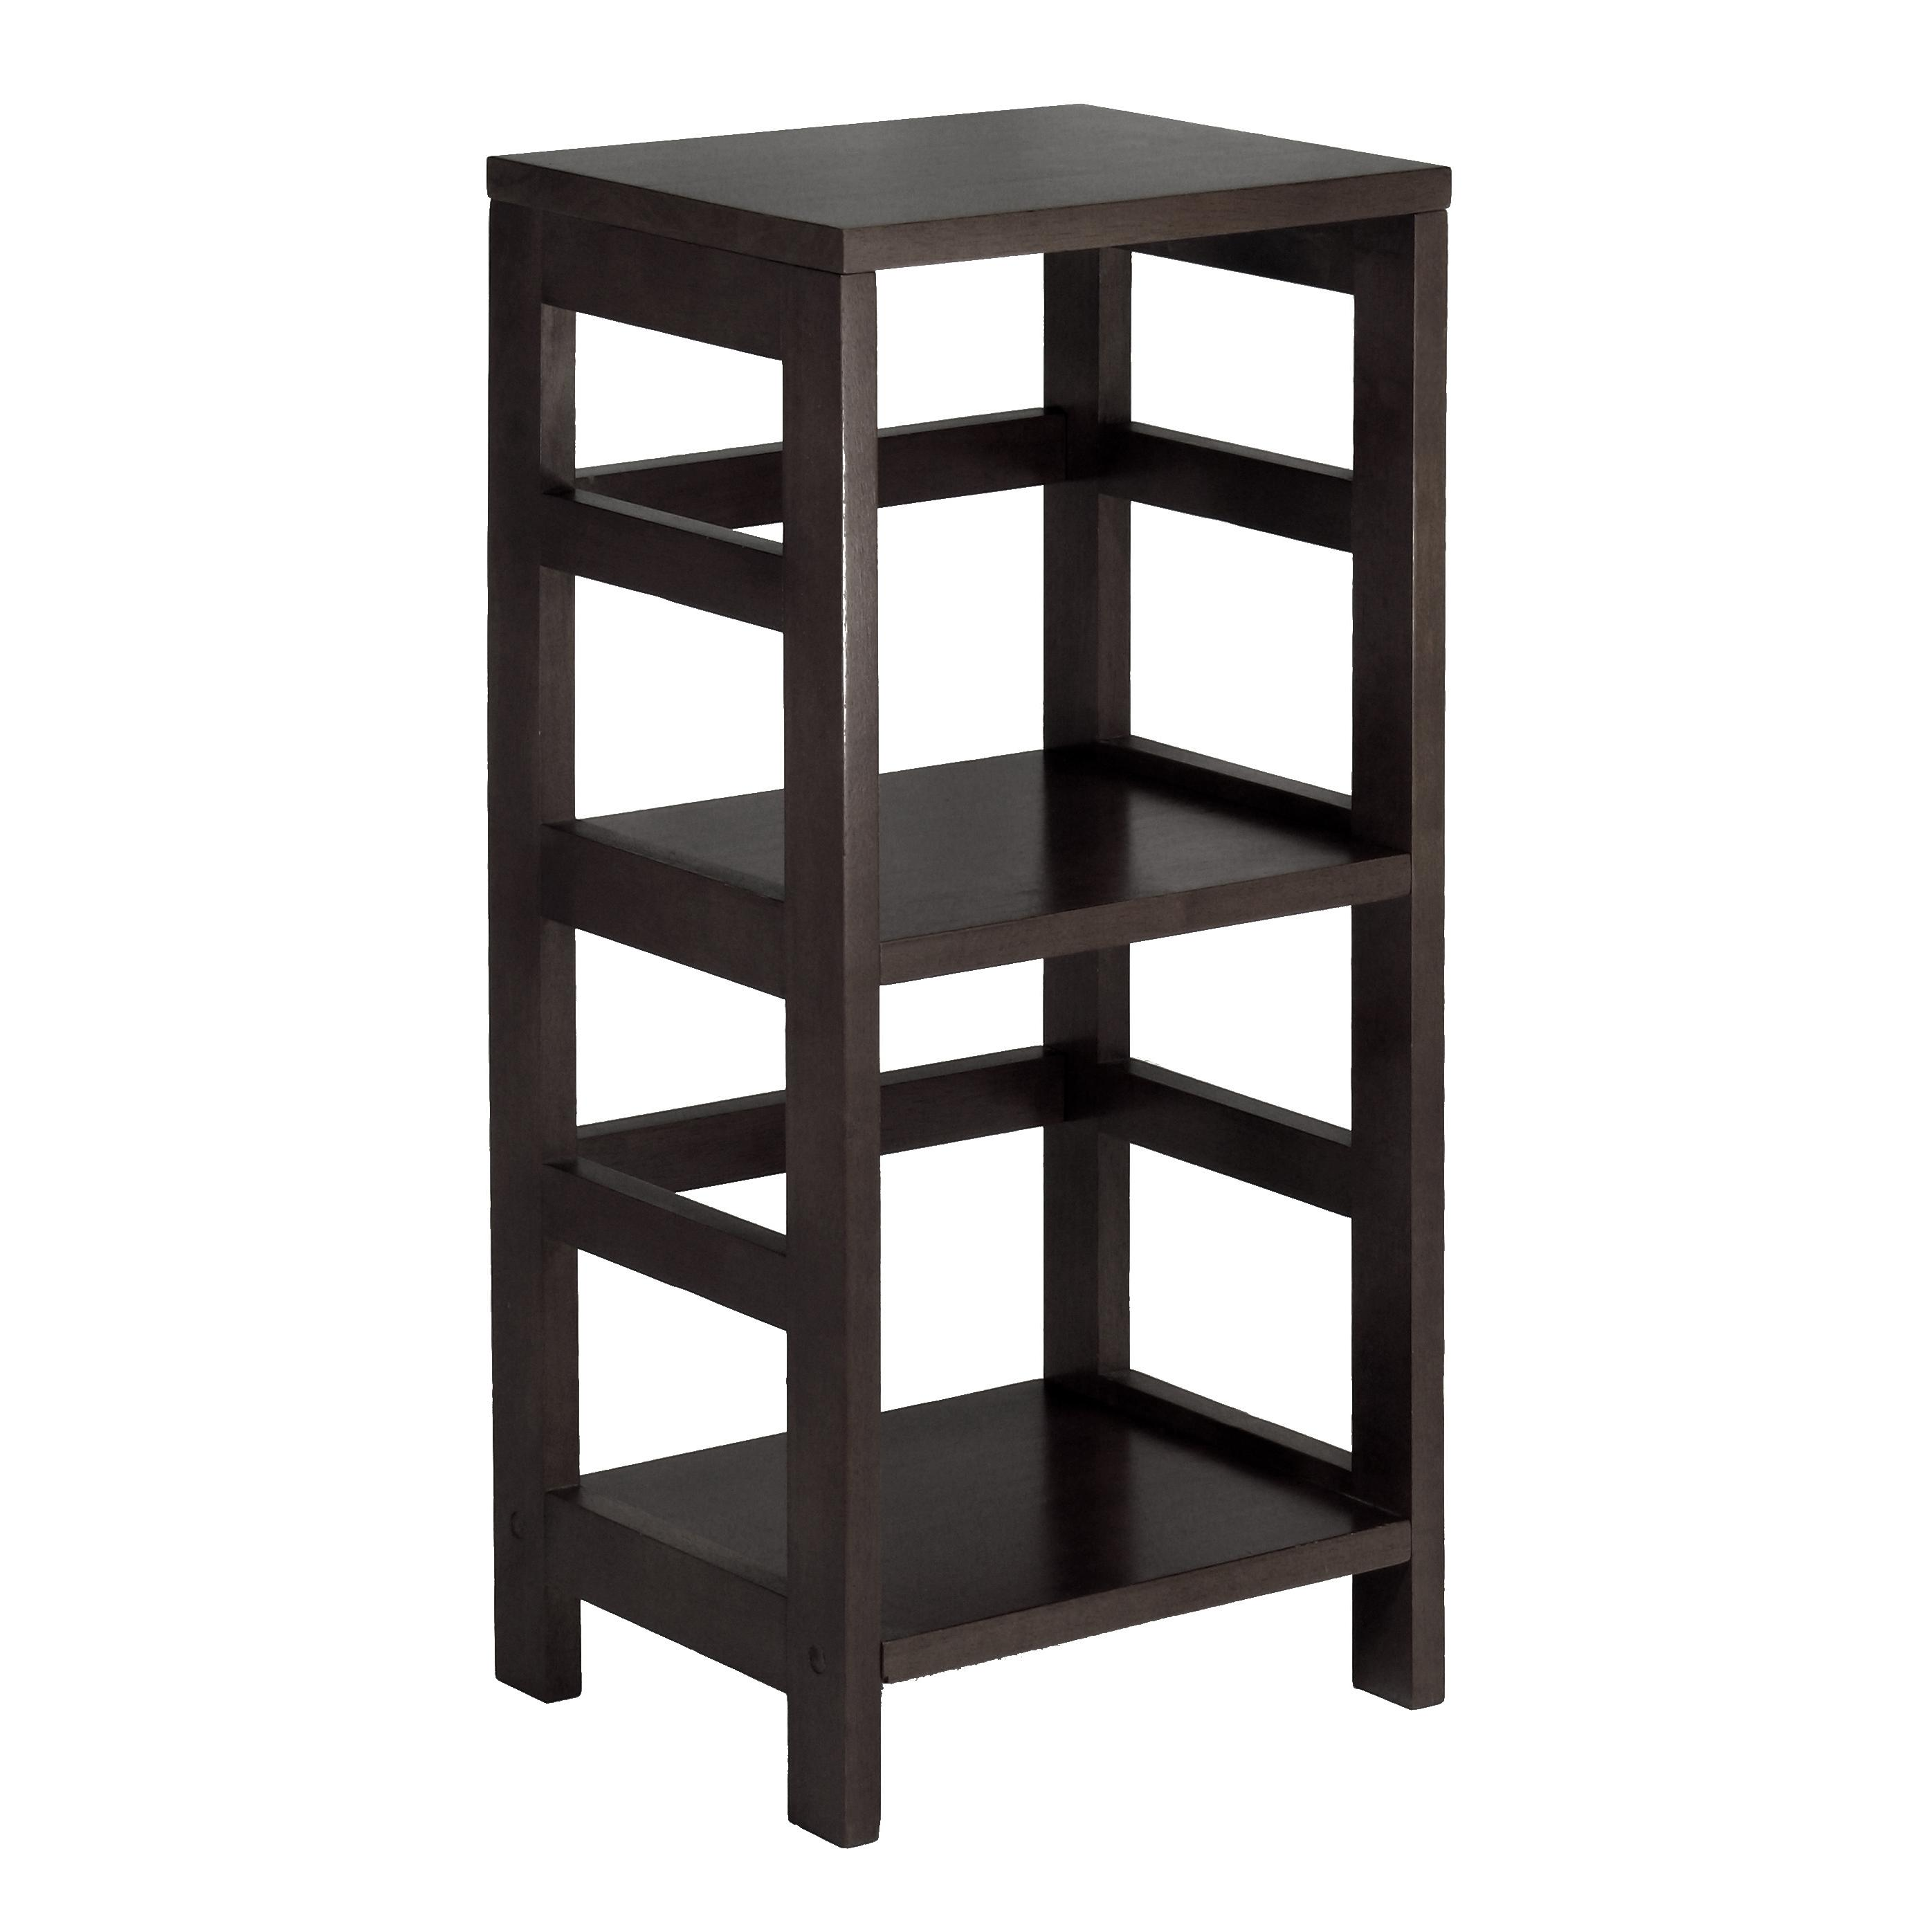 jpg units of unit for plain black white storage incredible ideas kallax your favorable lofty shelf wood picture nits home decoration brown shelving ikea